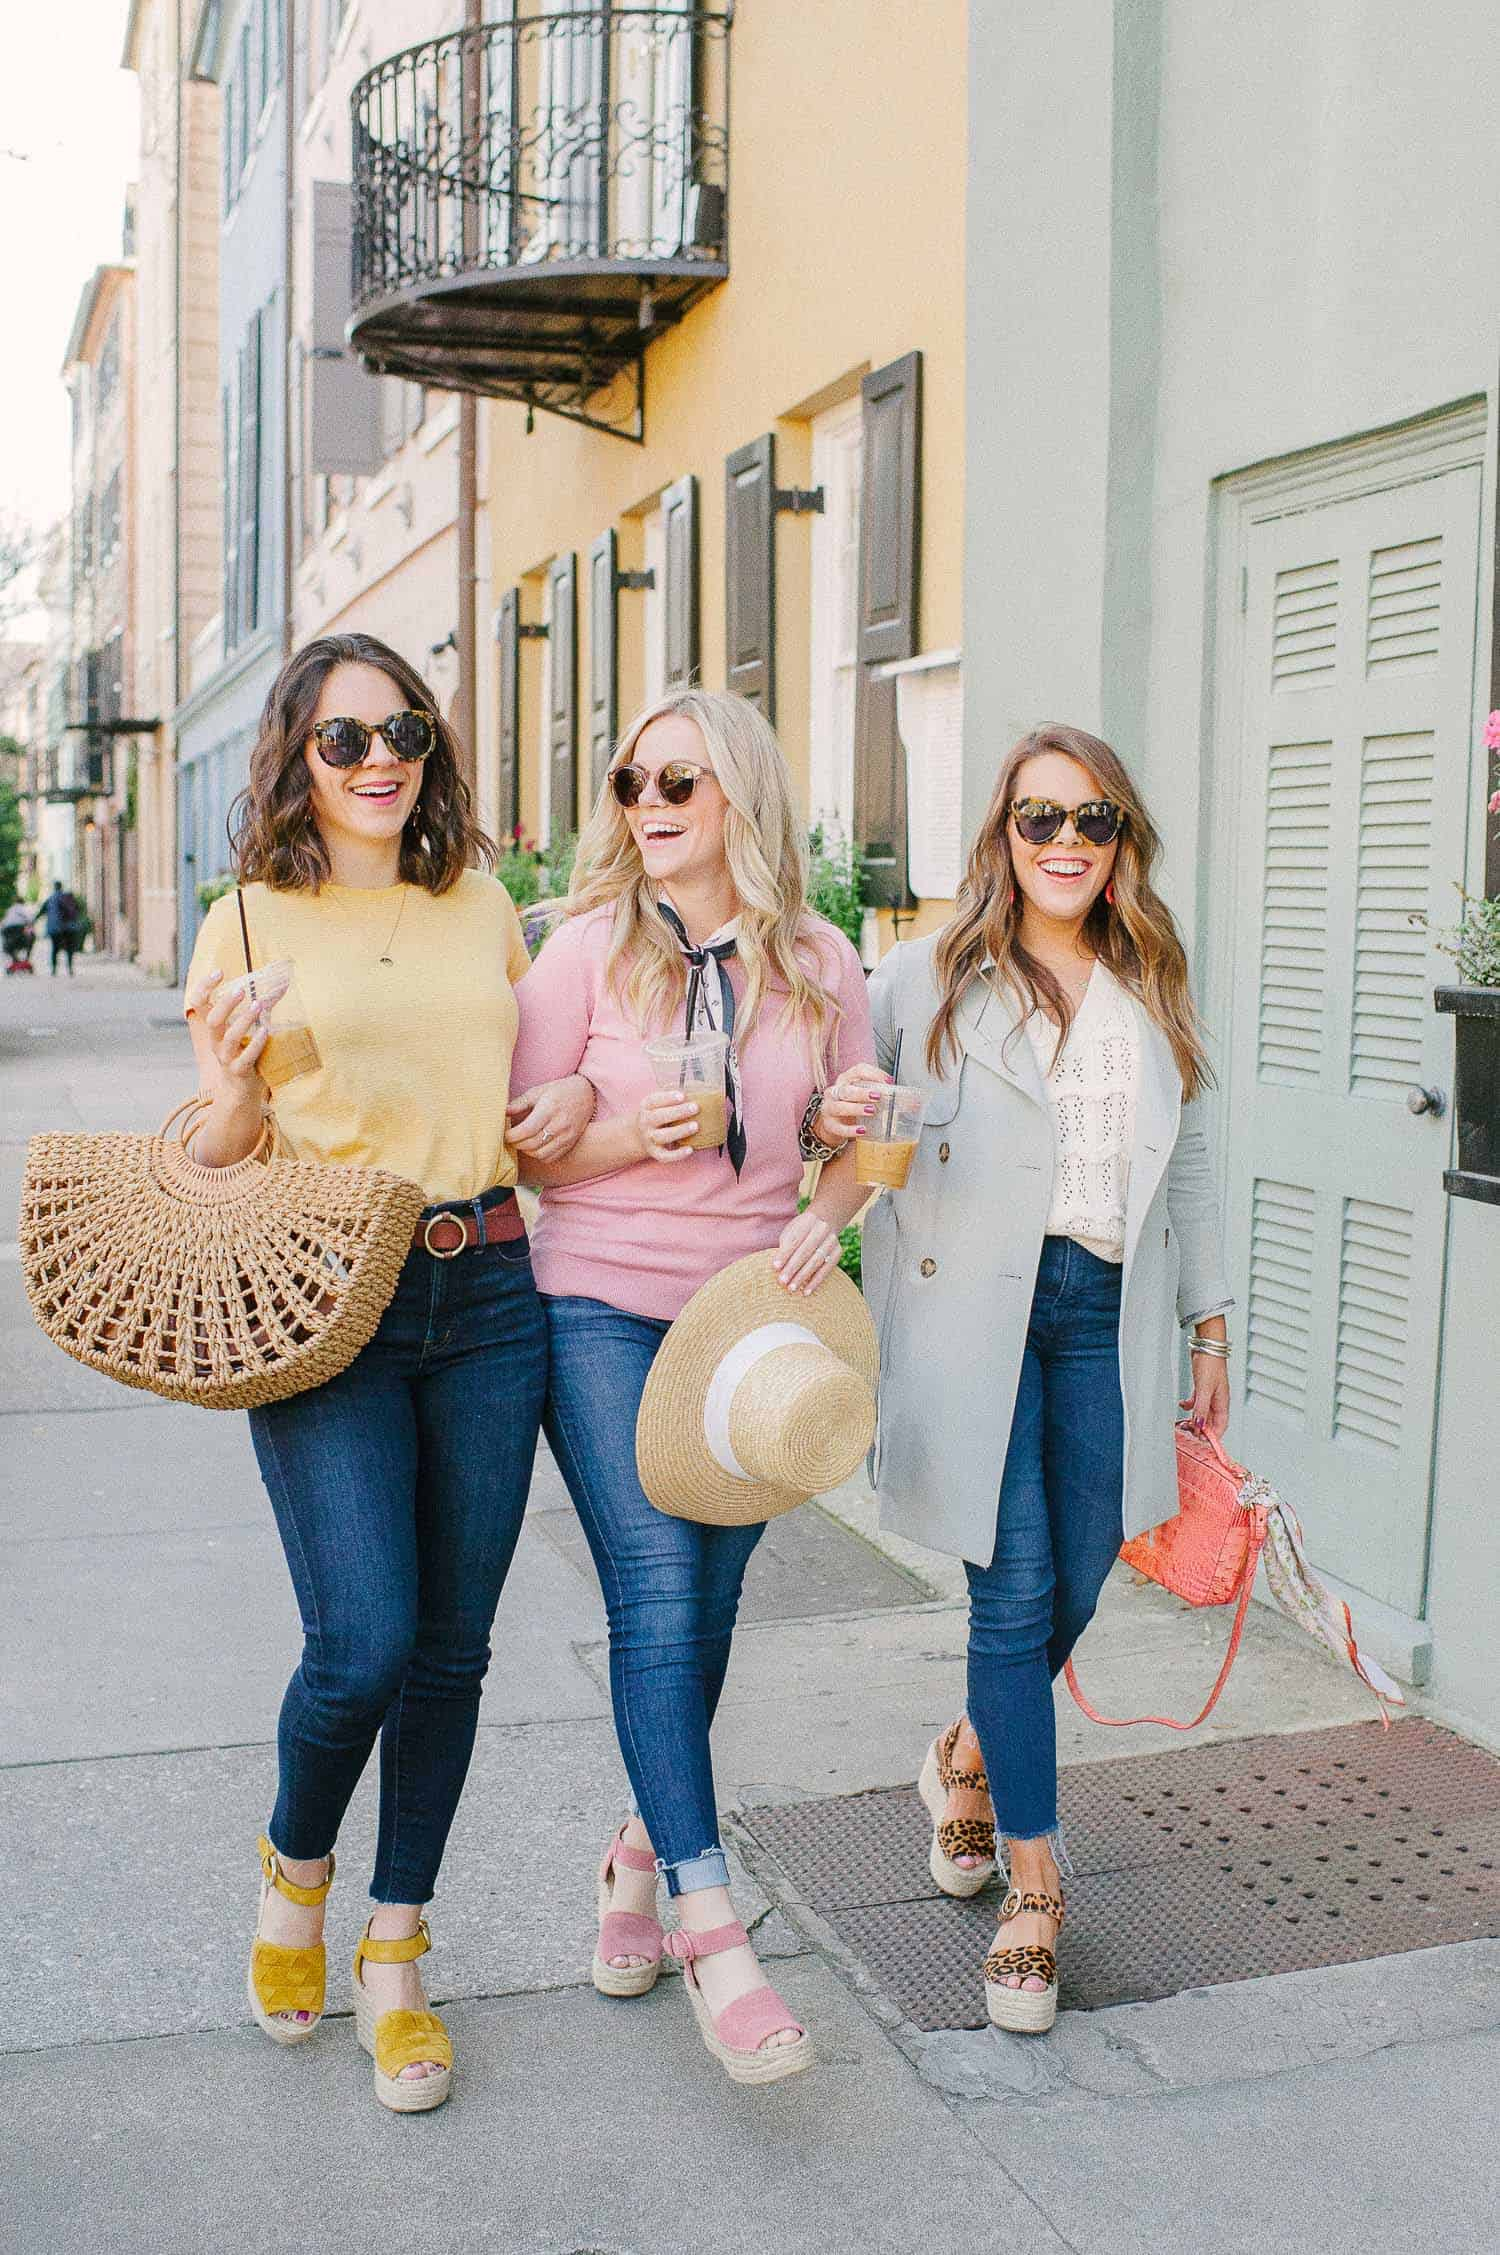 Friends outfit ideas in Charleston